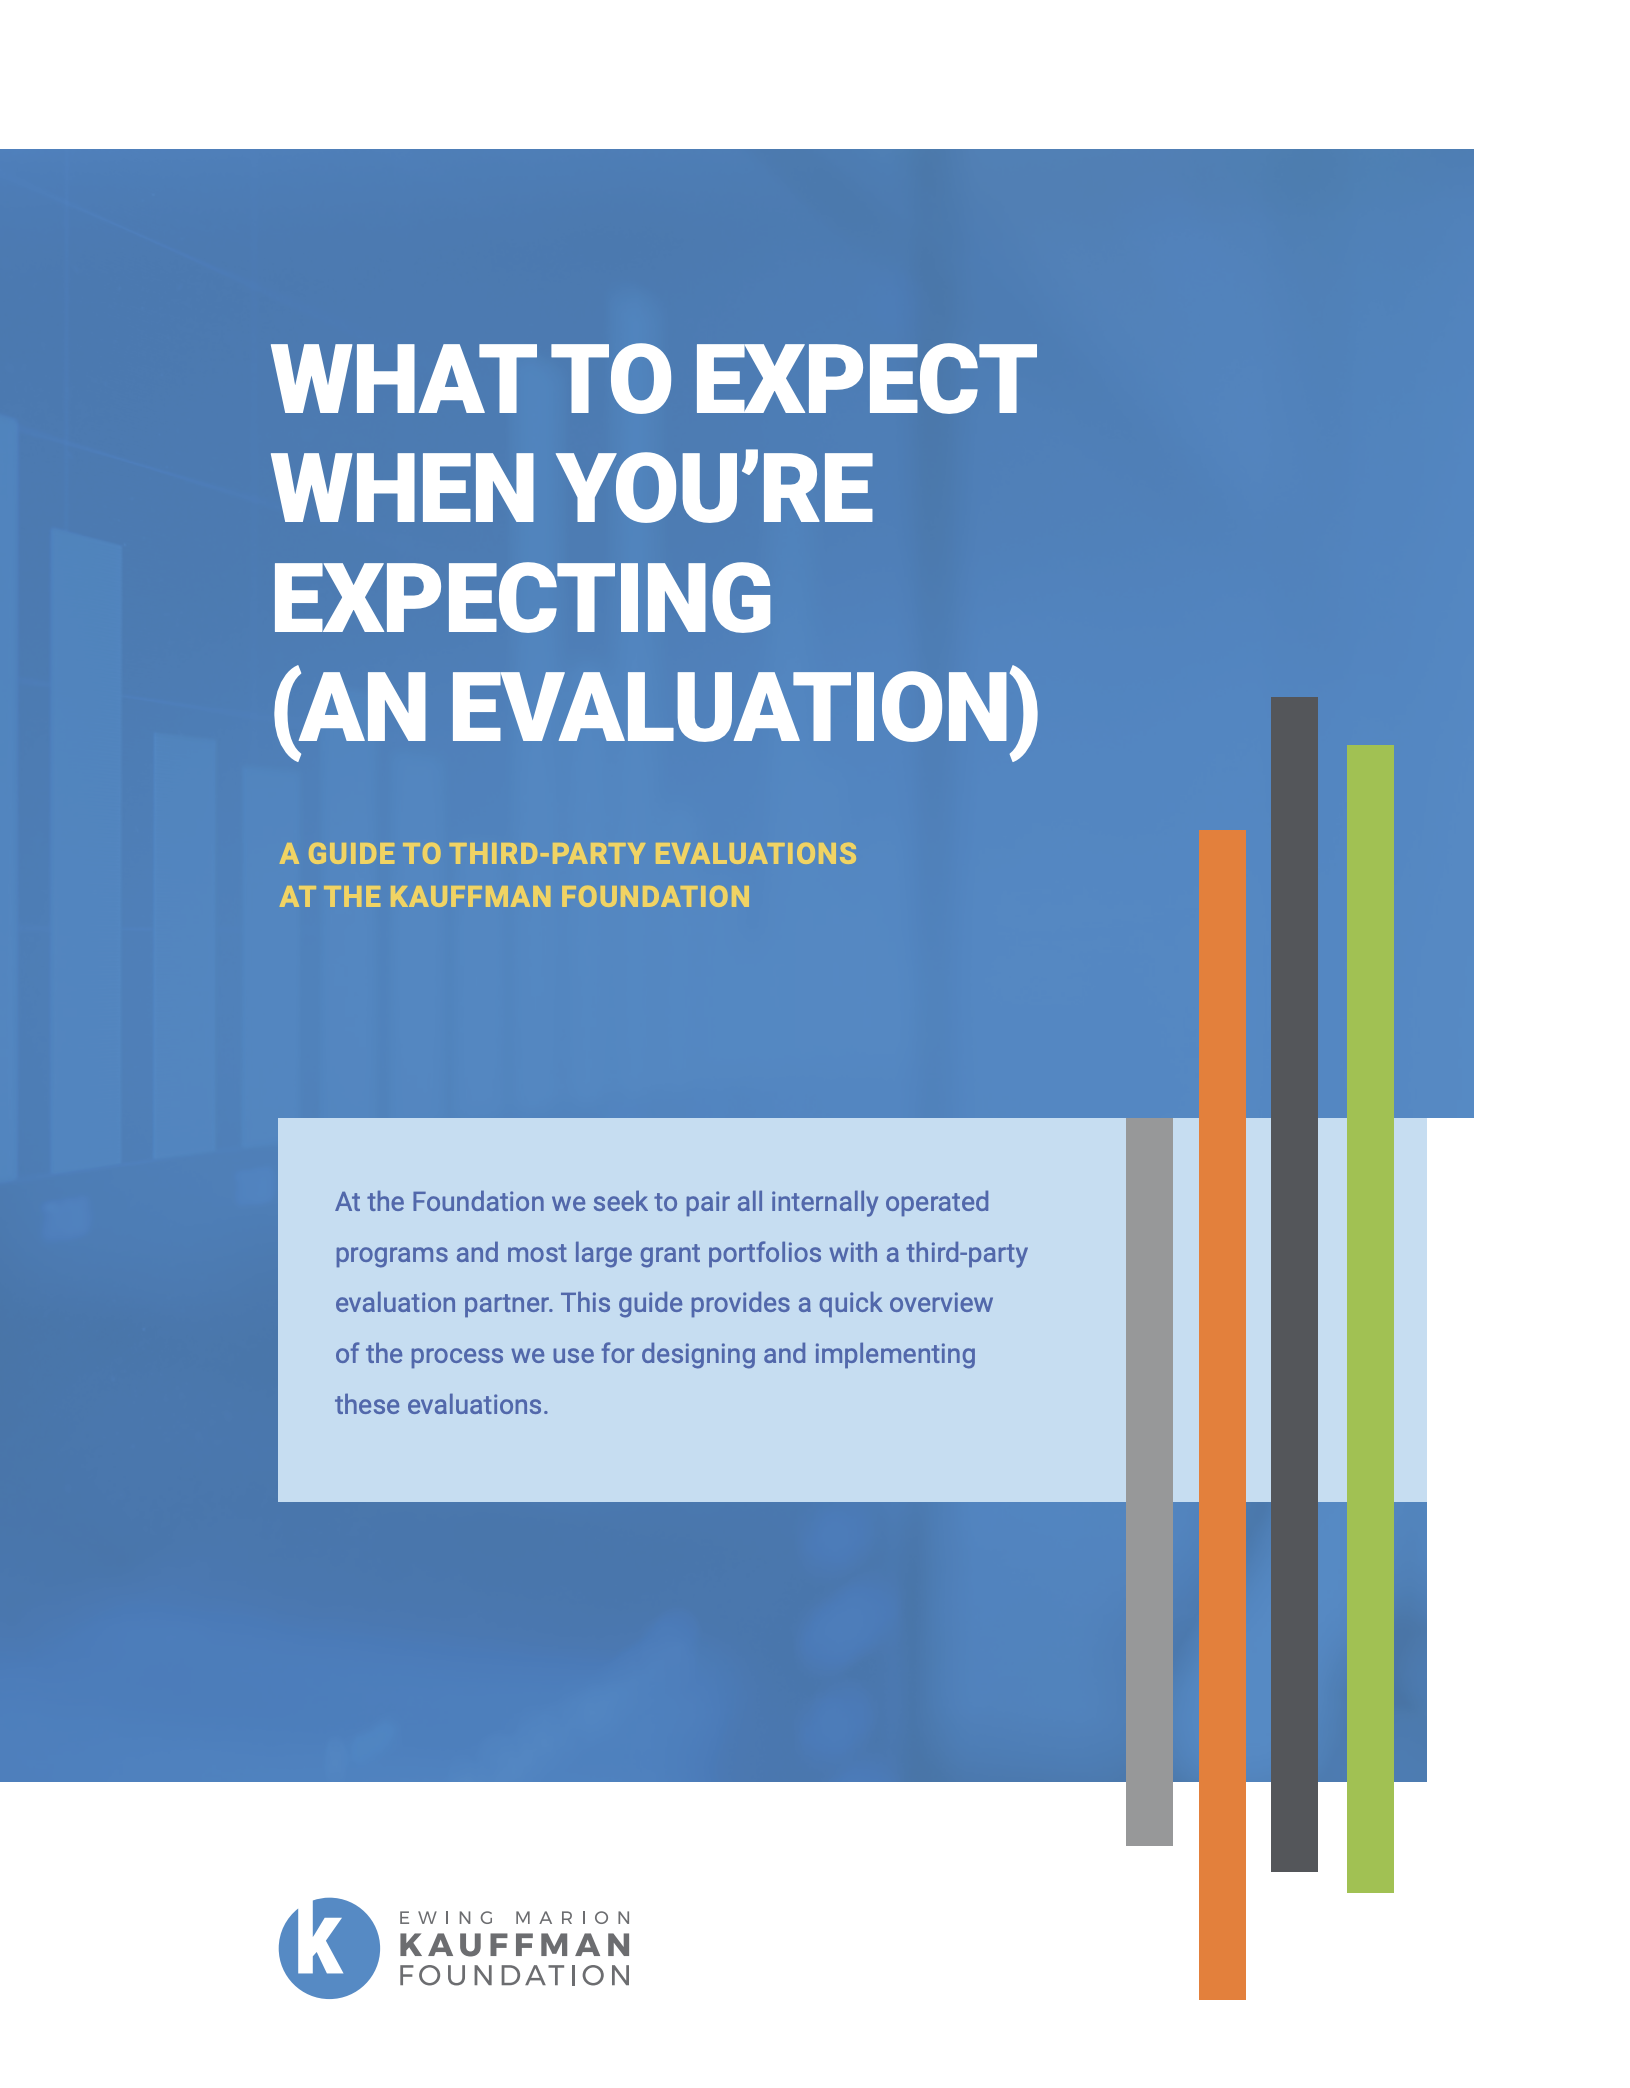 Third-Party Evaluations Guide: What to Expect When You're Expecting (an Evaluation)